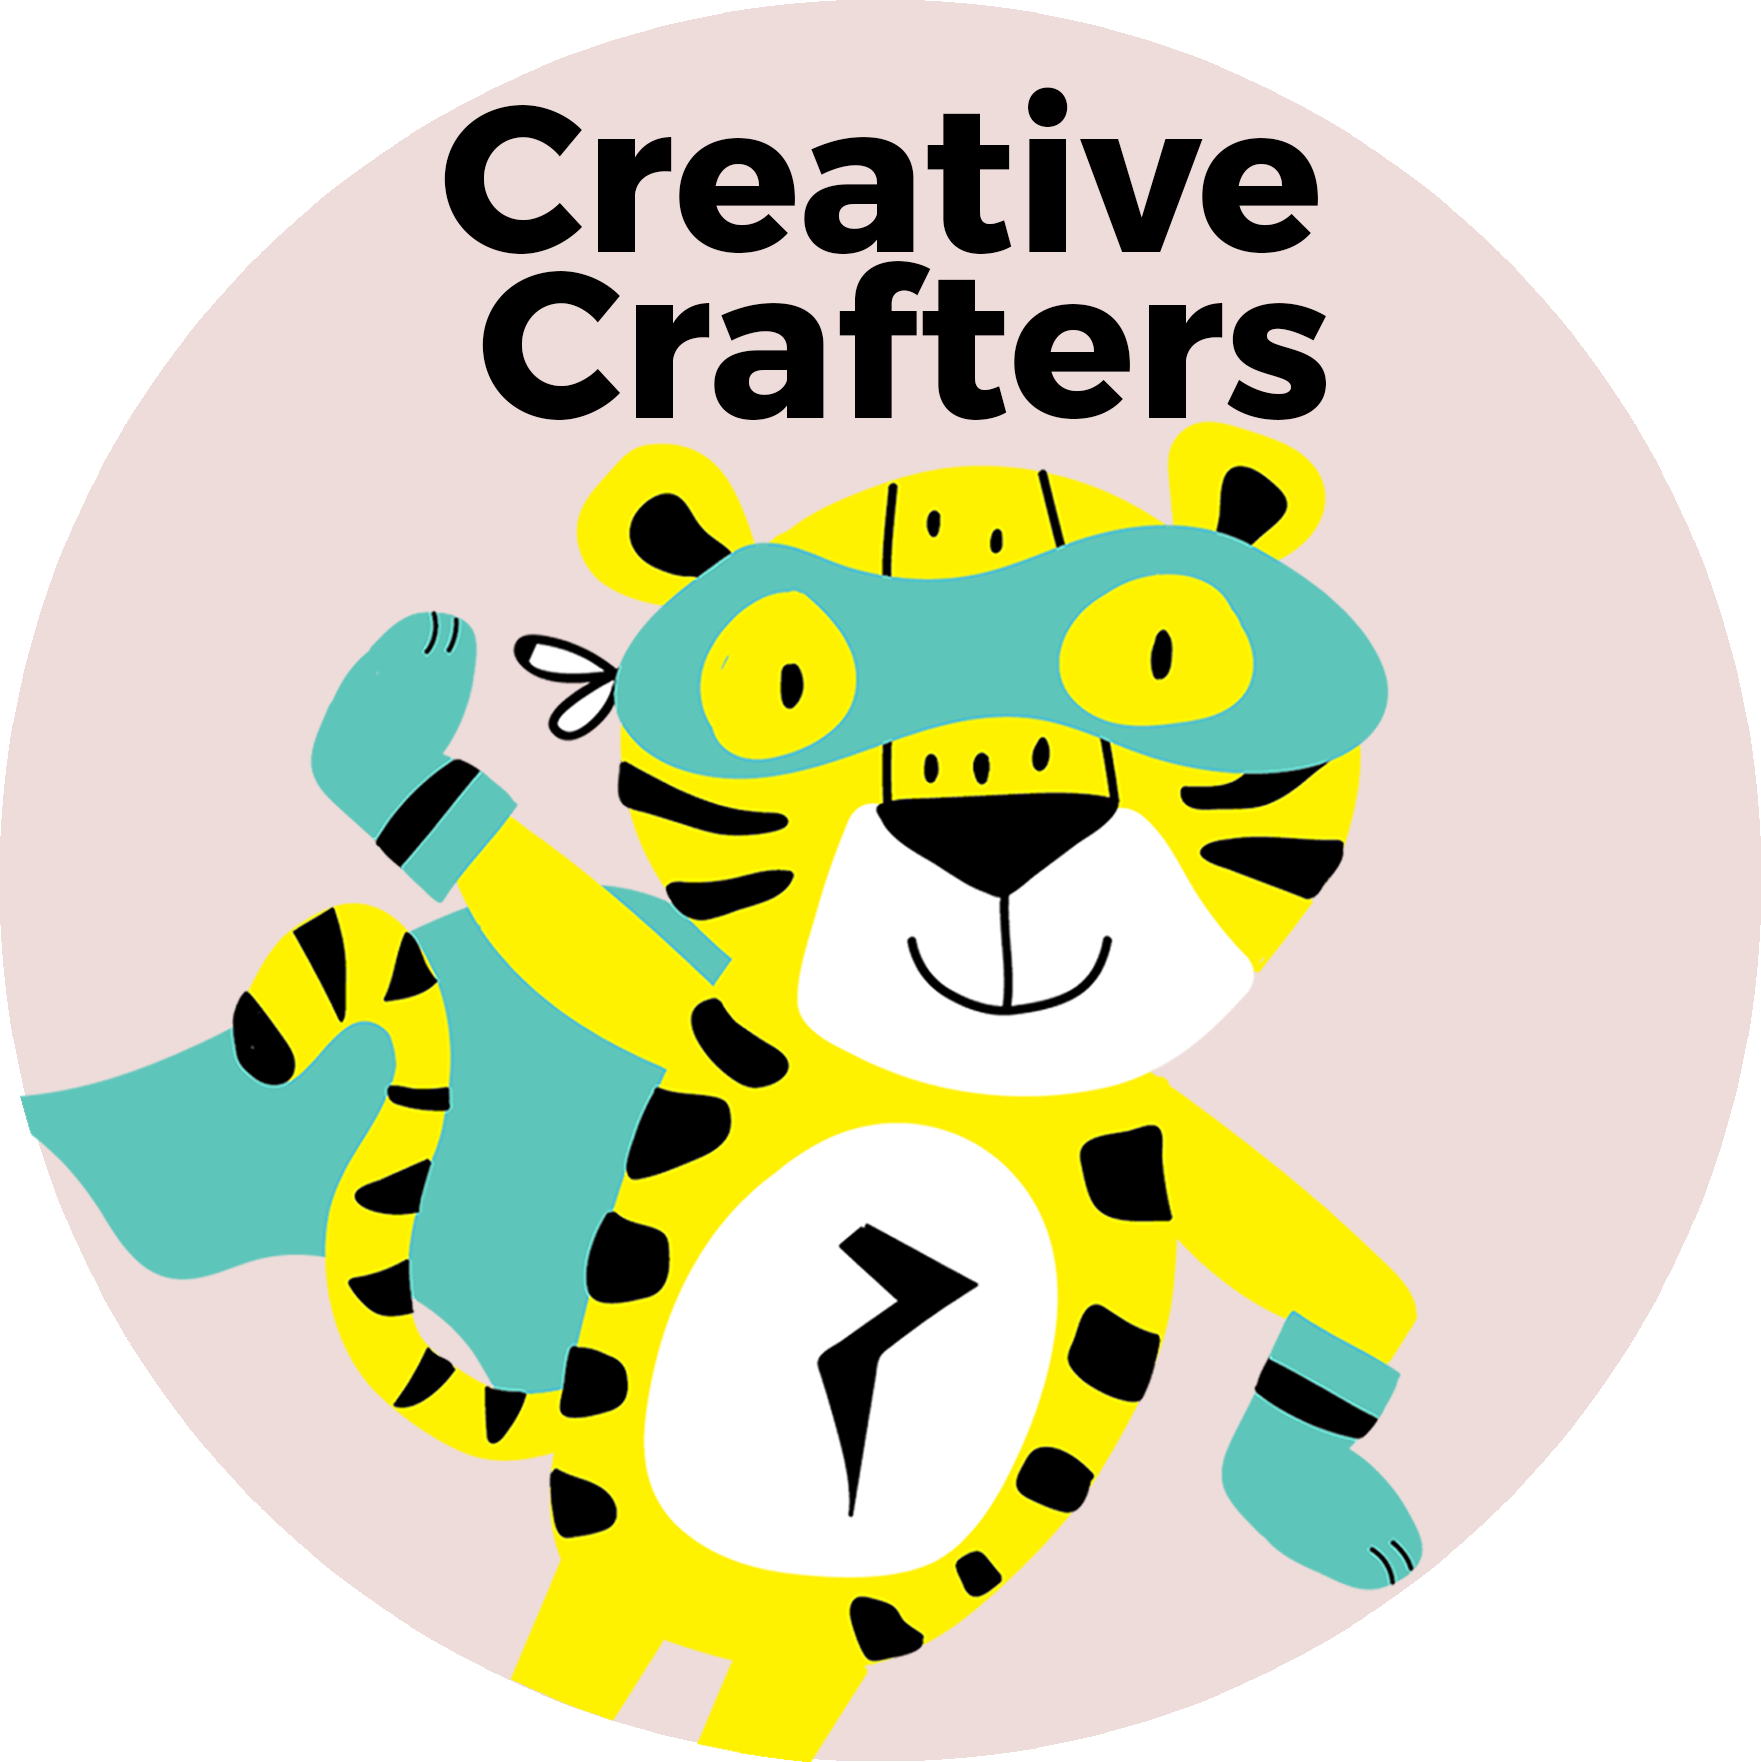 Creative Crafters (3).png